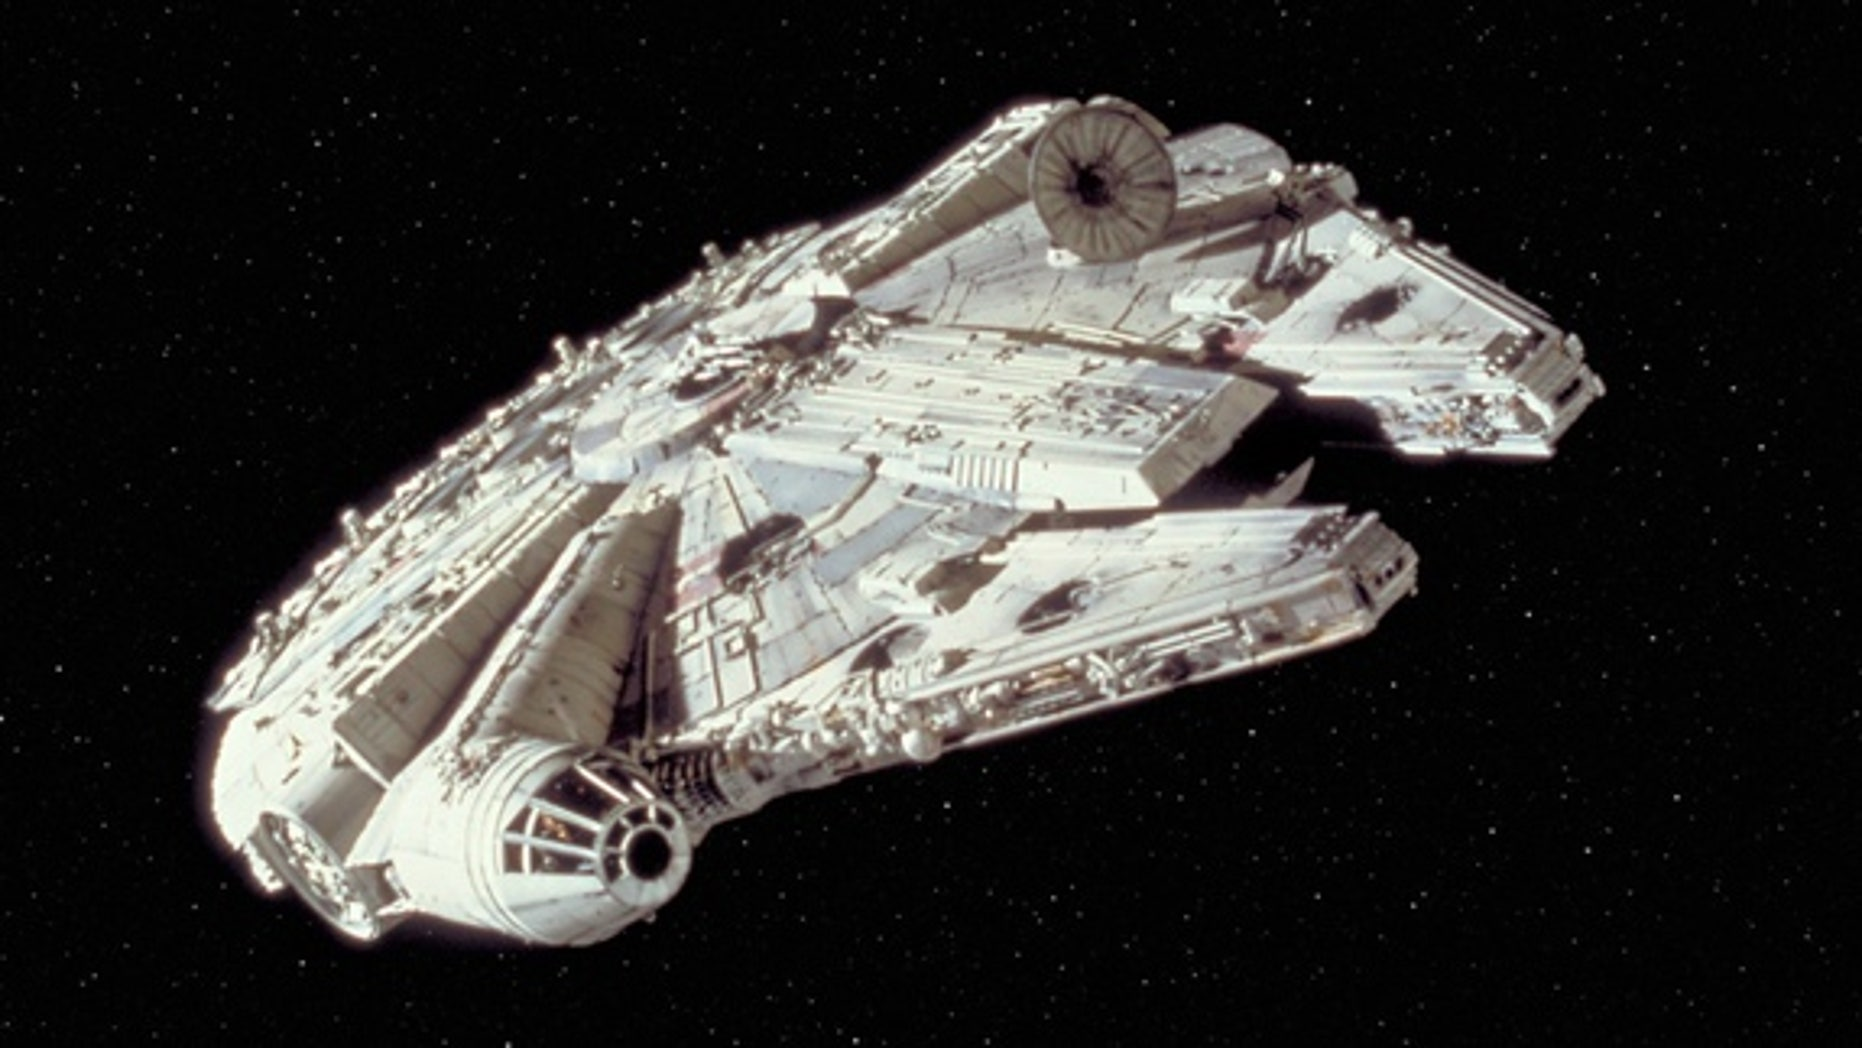 """The Millennium Falcon in """"Star Wars Episode IV: A New Hope."""""""